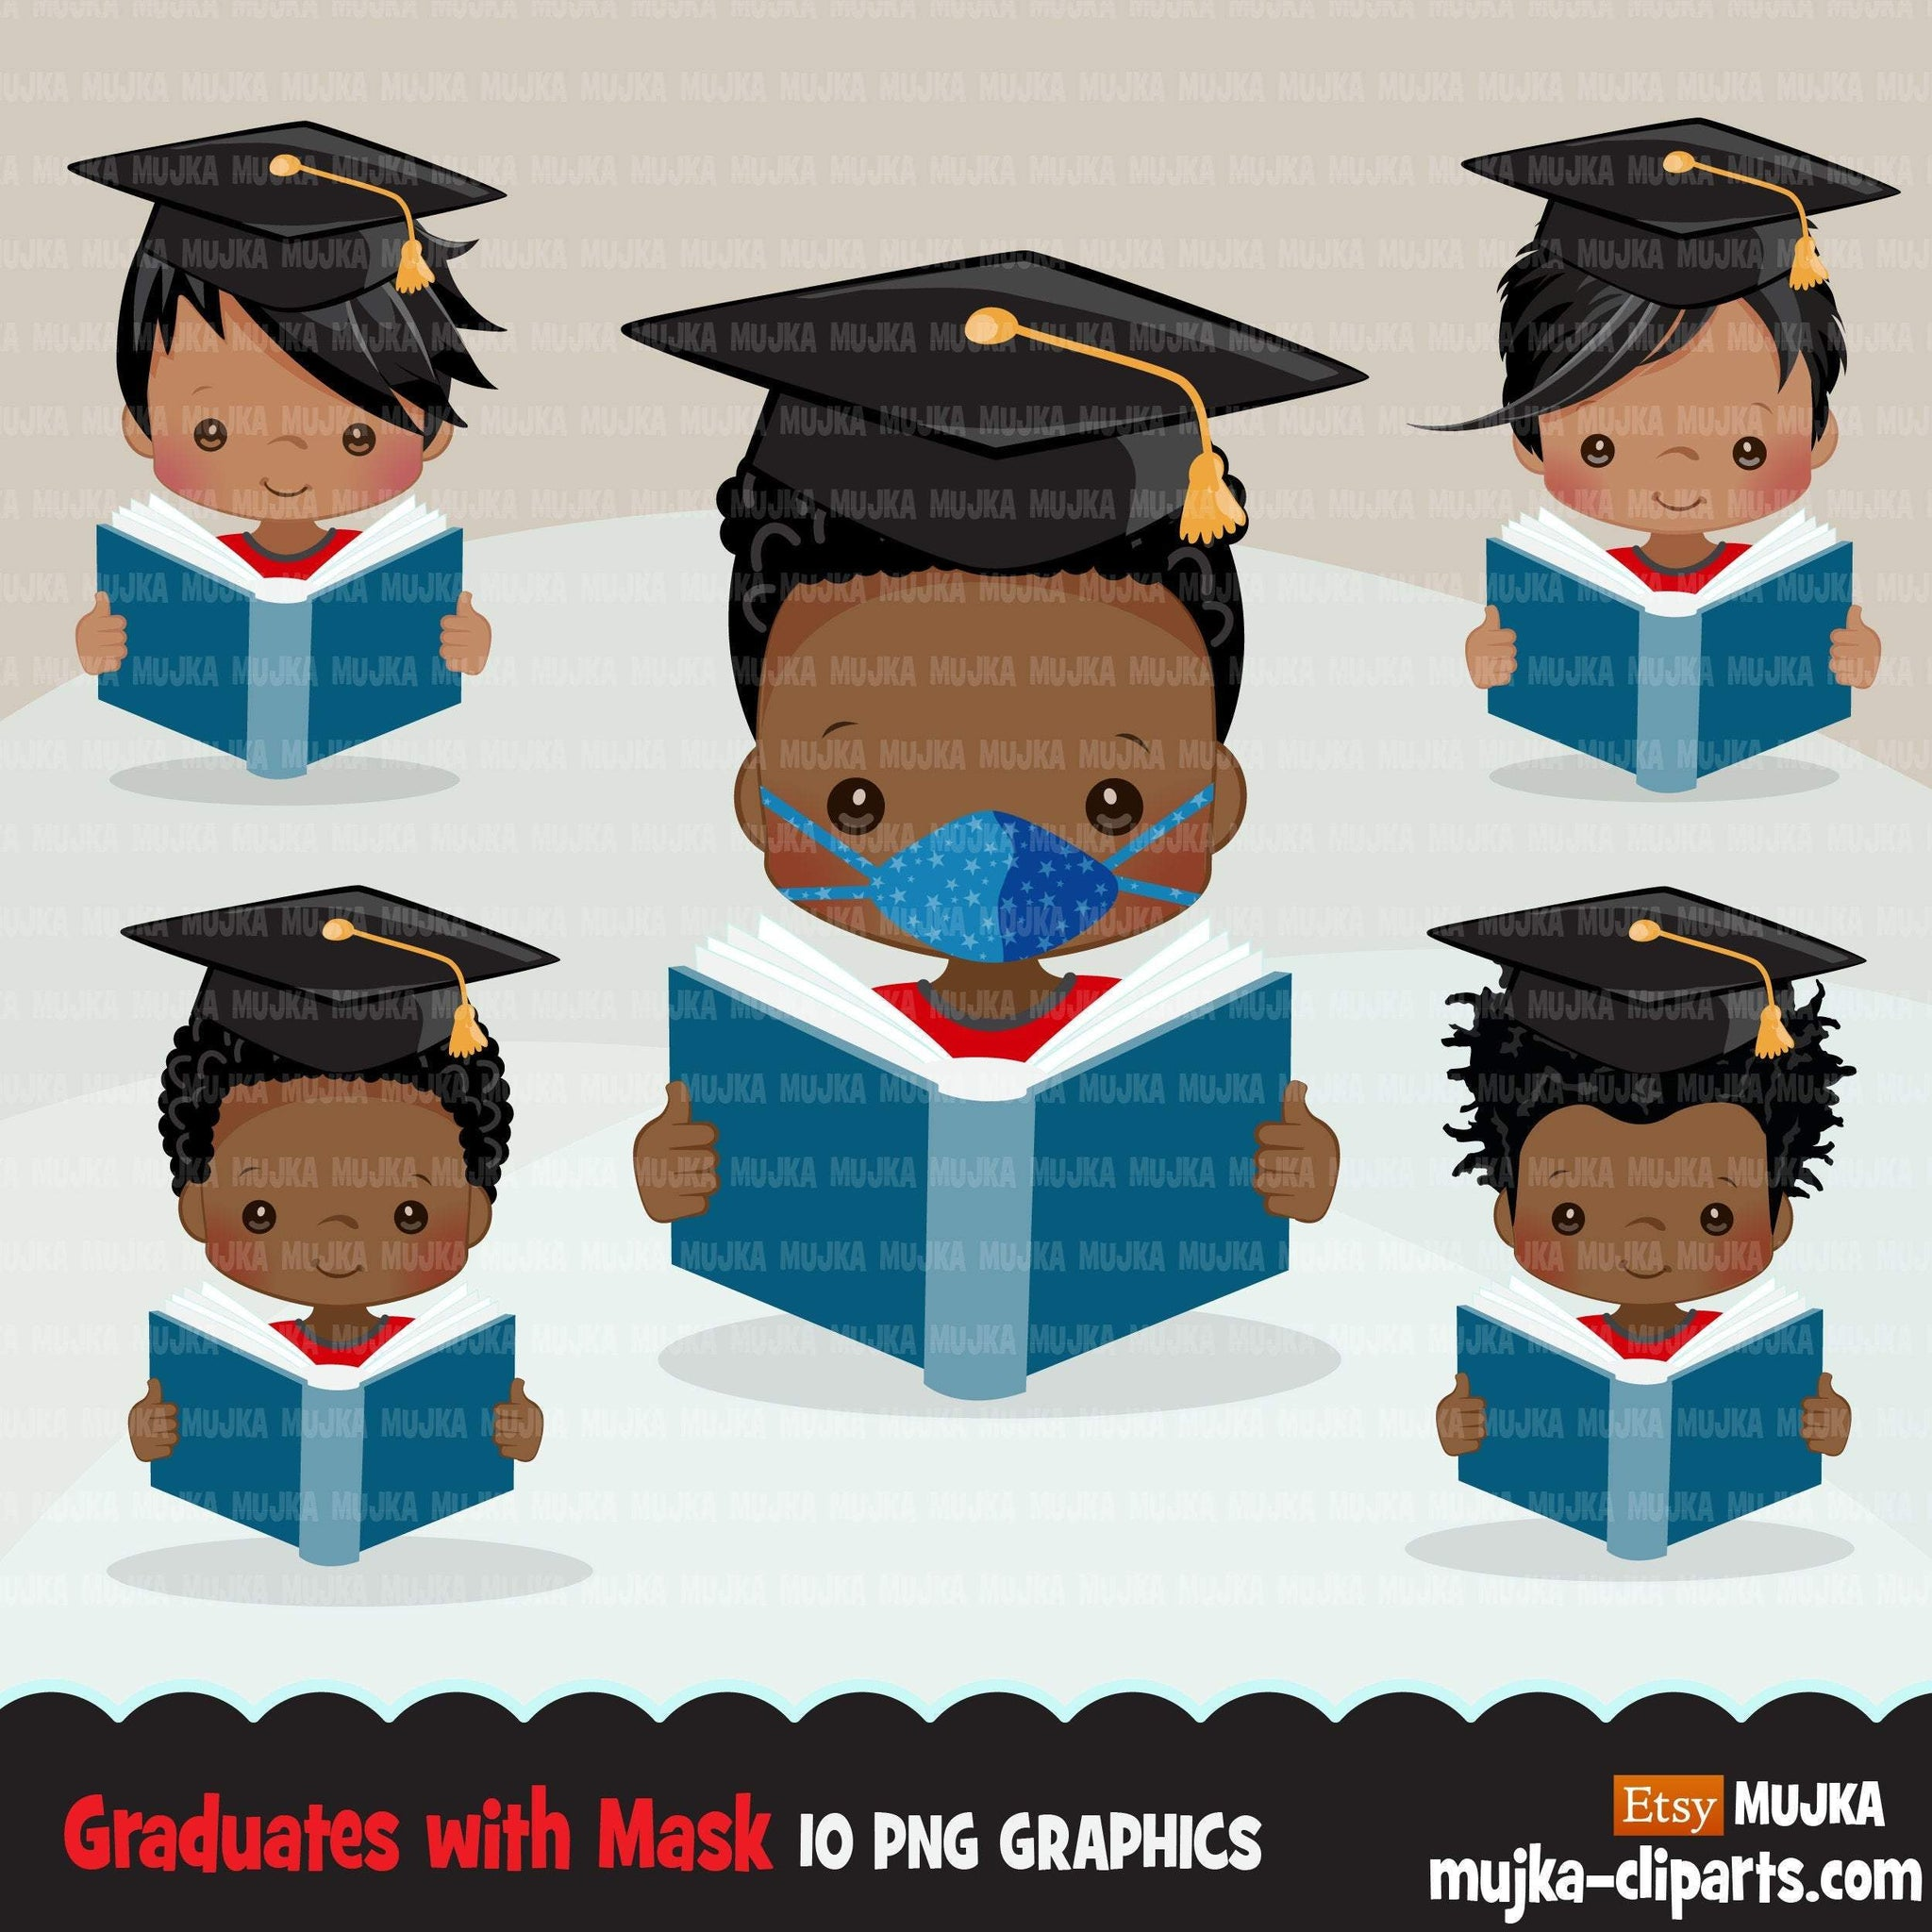 Graduation Clipart, graduate black boys with book and mask, school, student class of 2020 covid quarantine graduation graphics, PNG clip art